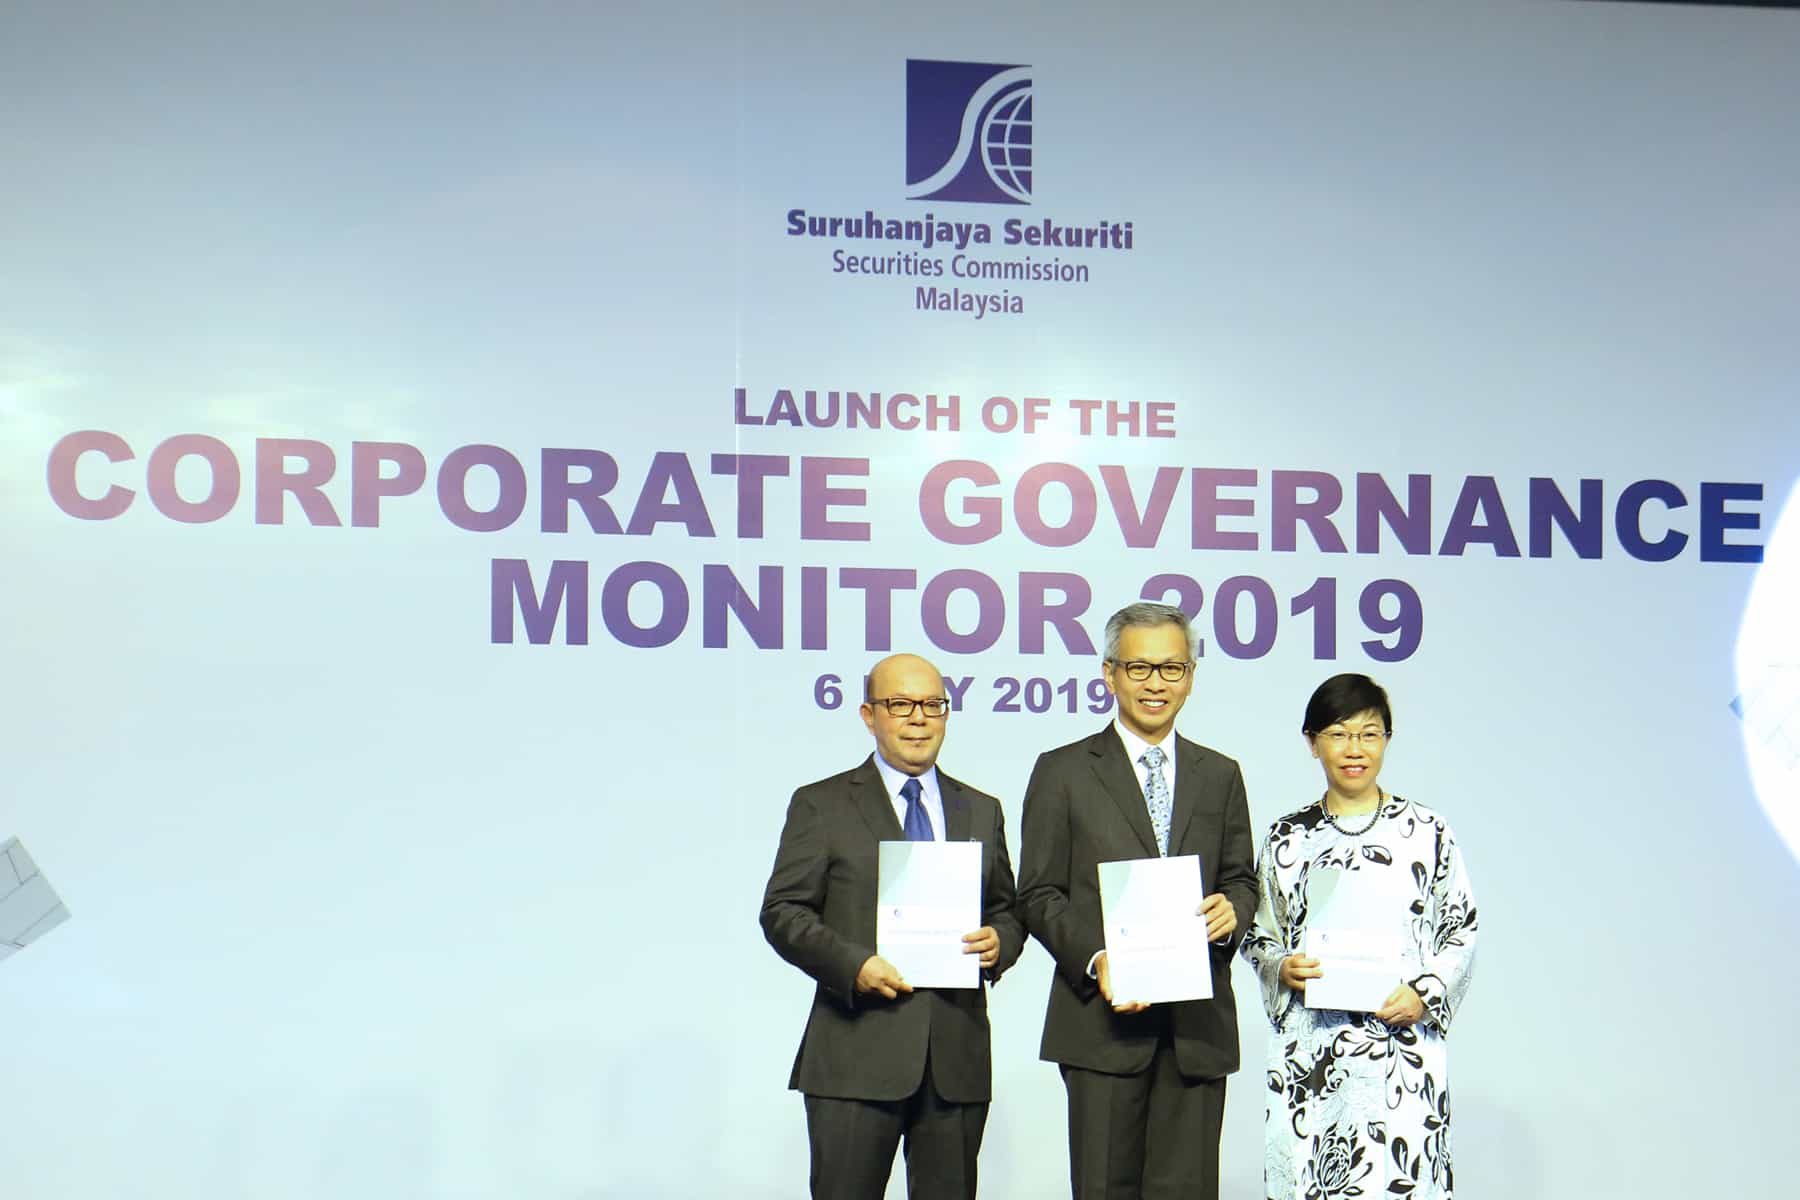 SC's Inaugural CG Monitor Reports Encouraging Adoption of Corporate Governance Best Practices